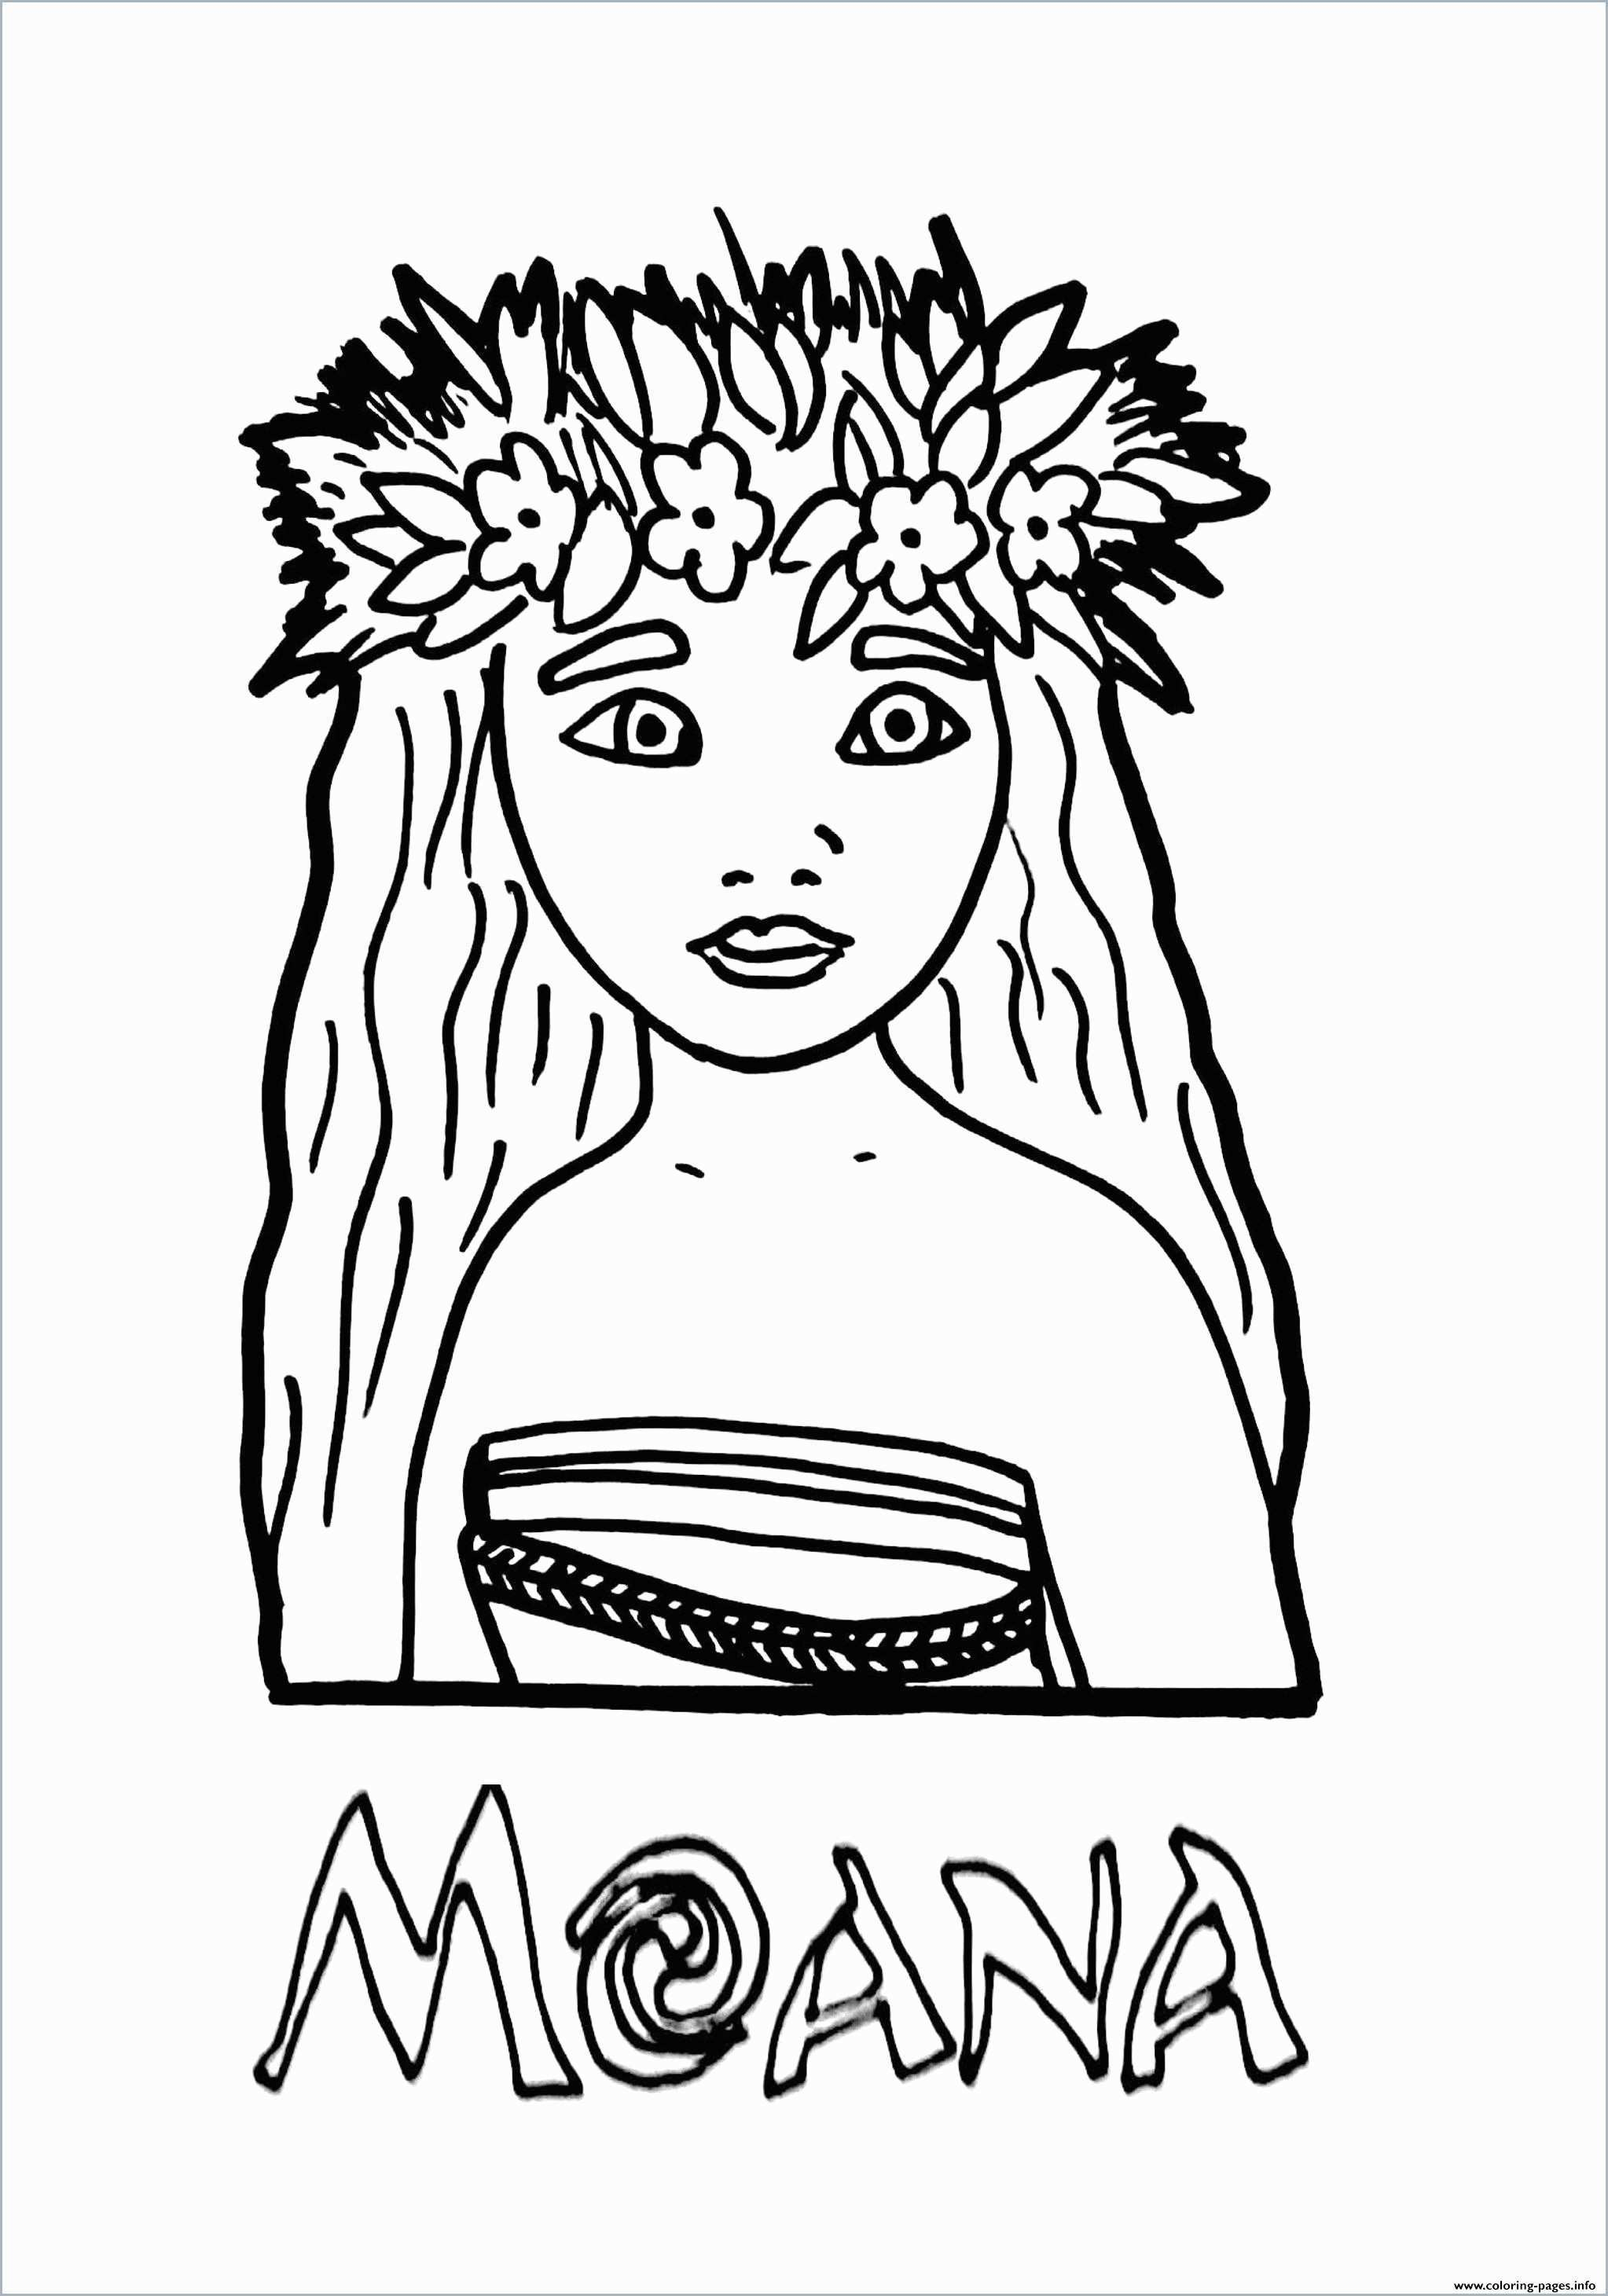 Anna Coloring Pages Inspirational Santa Anna Coloring Page Tintuc247